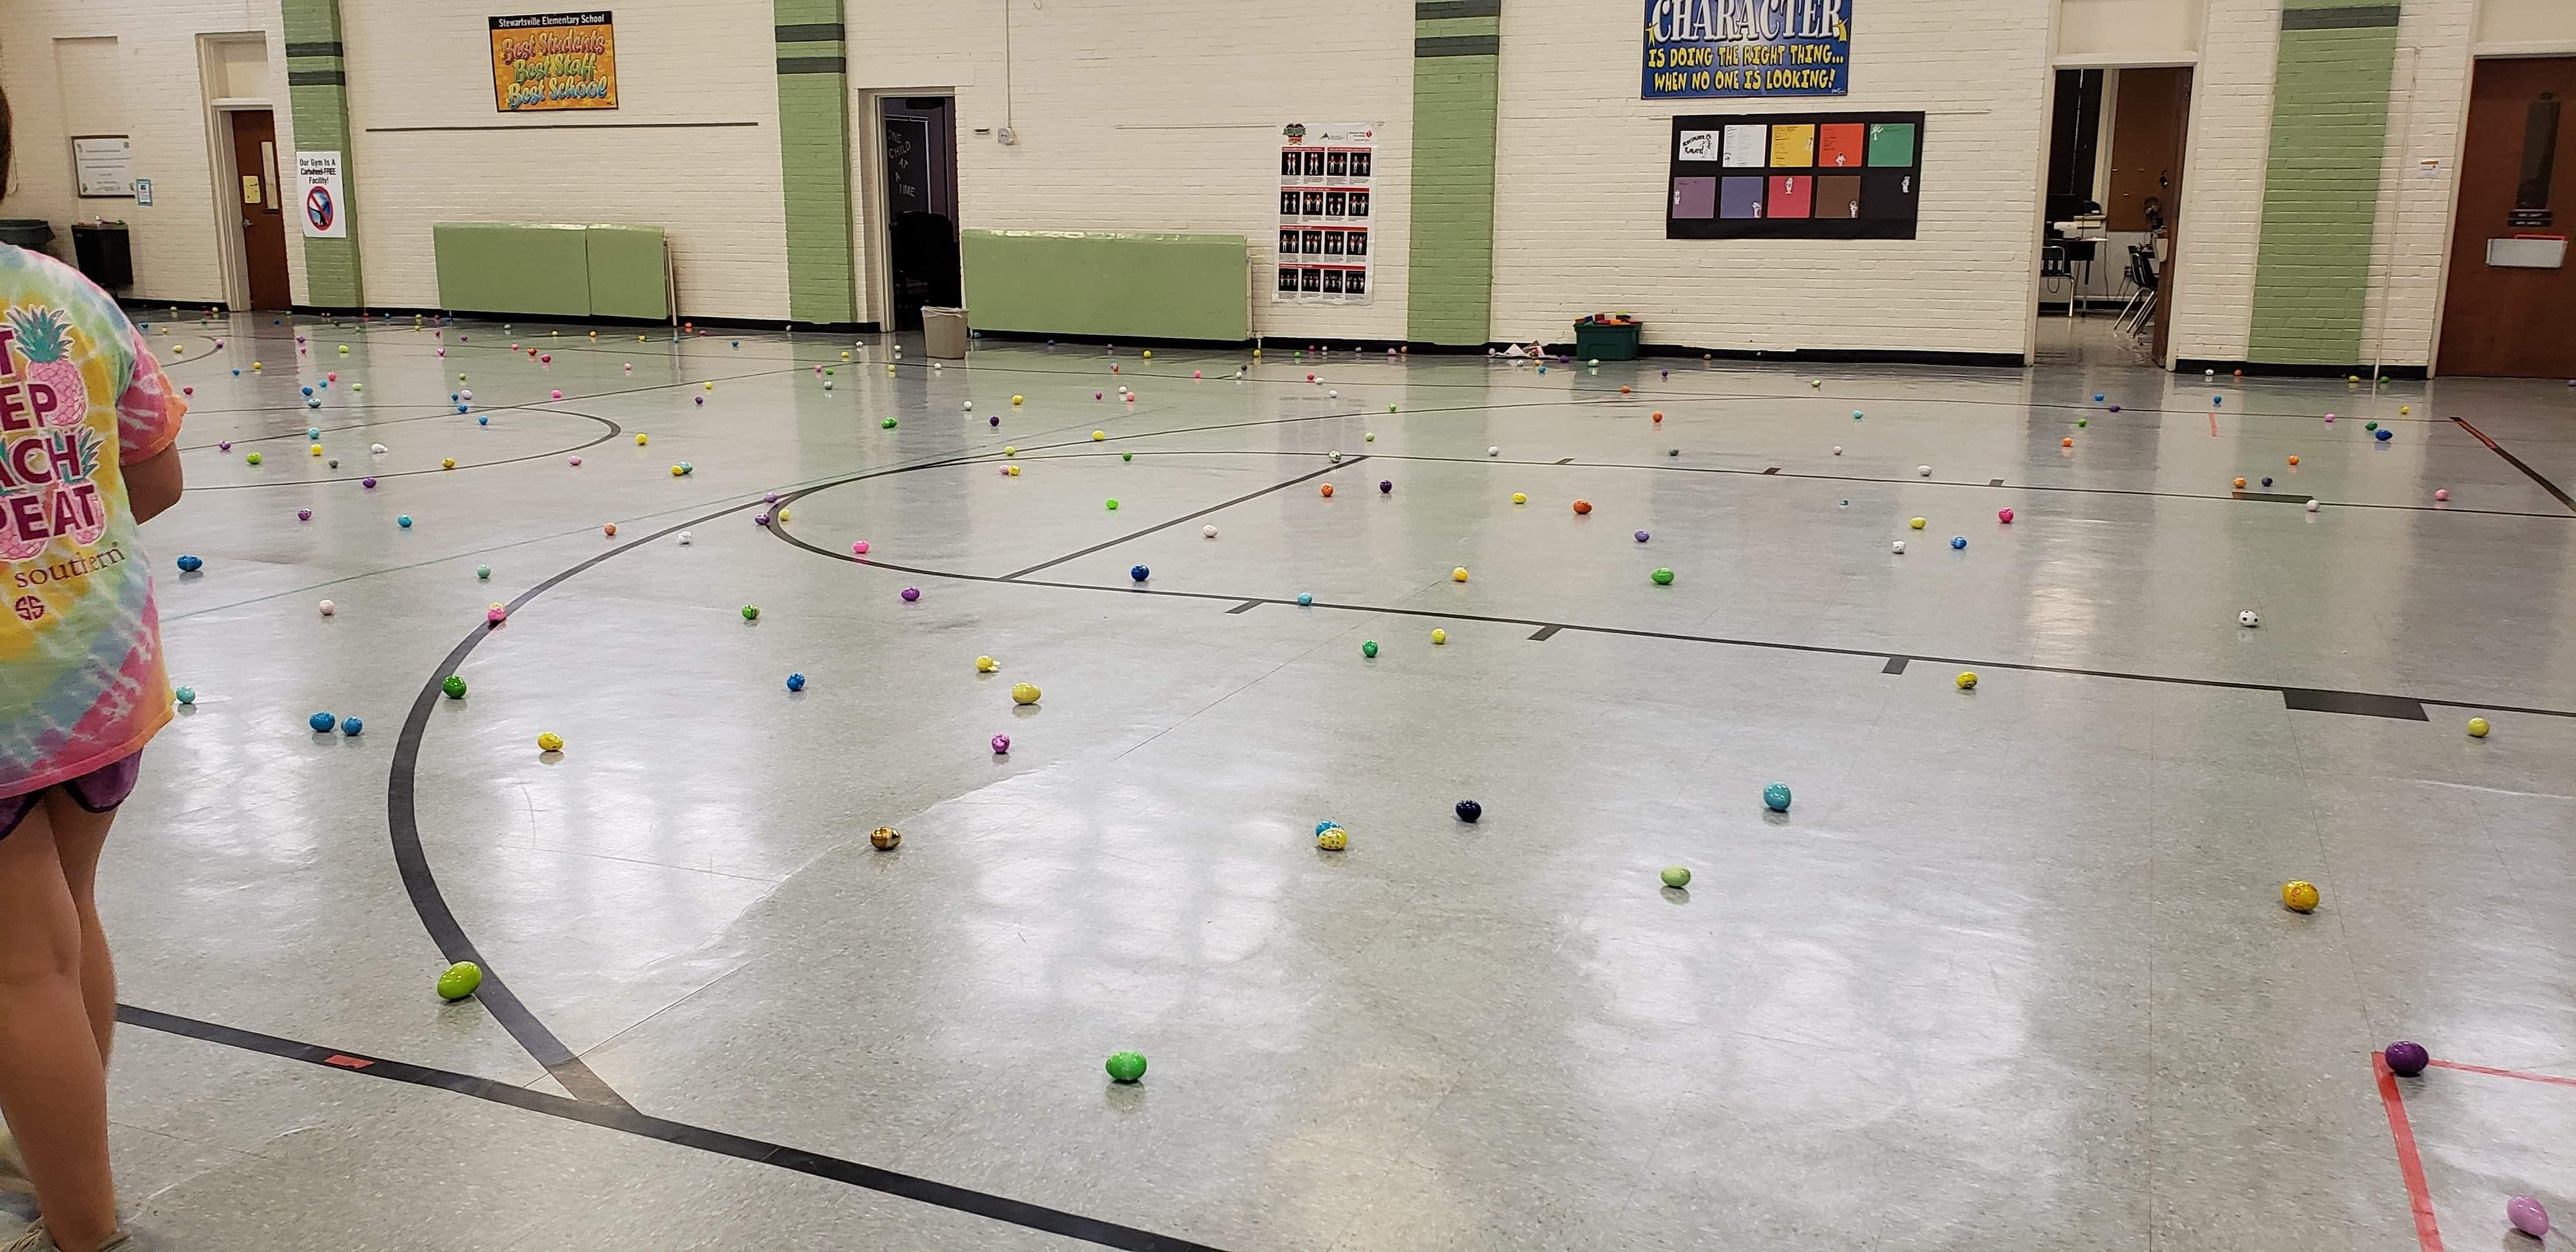 Easter egg hunt was rained out at my son's school, so everyone had to hide the eggs in the gym...